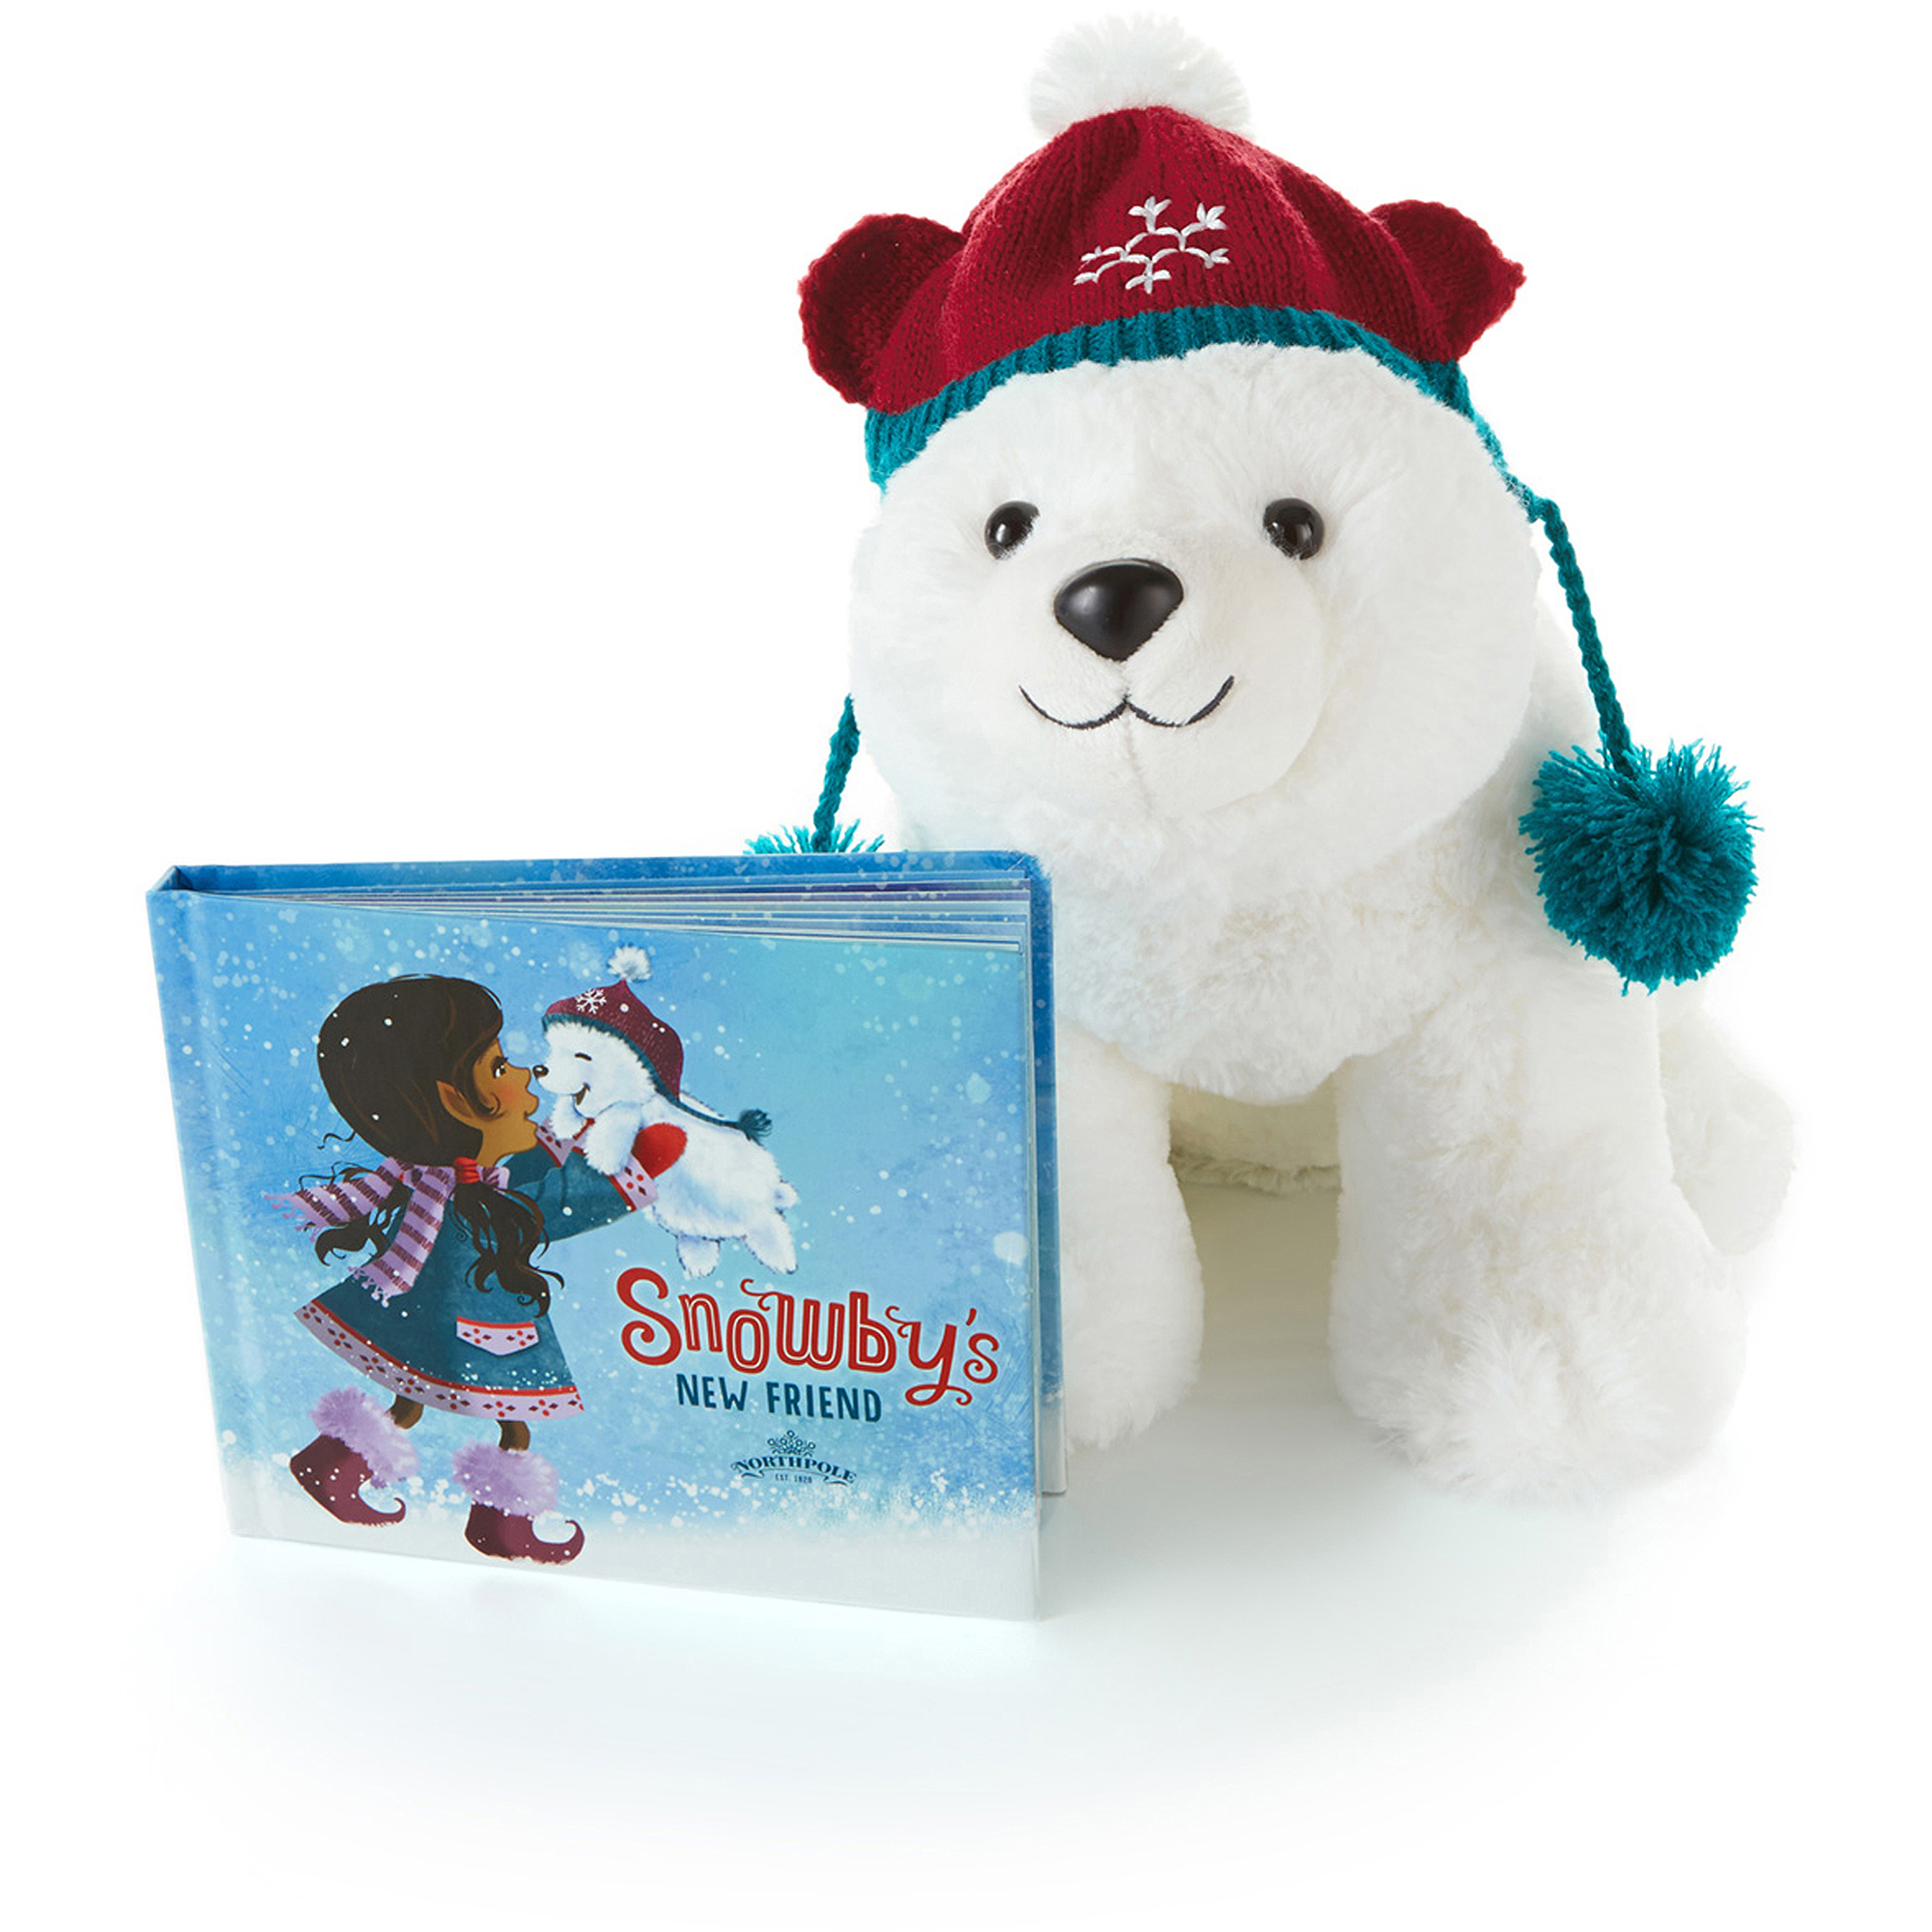 Hallmark Interactive Snowby the Polar Bear and Book, Snowby's New Friend